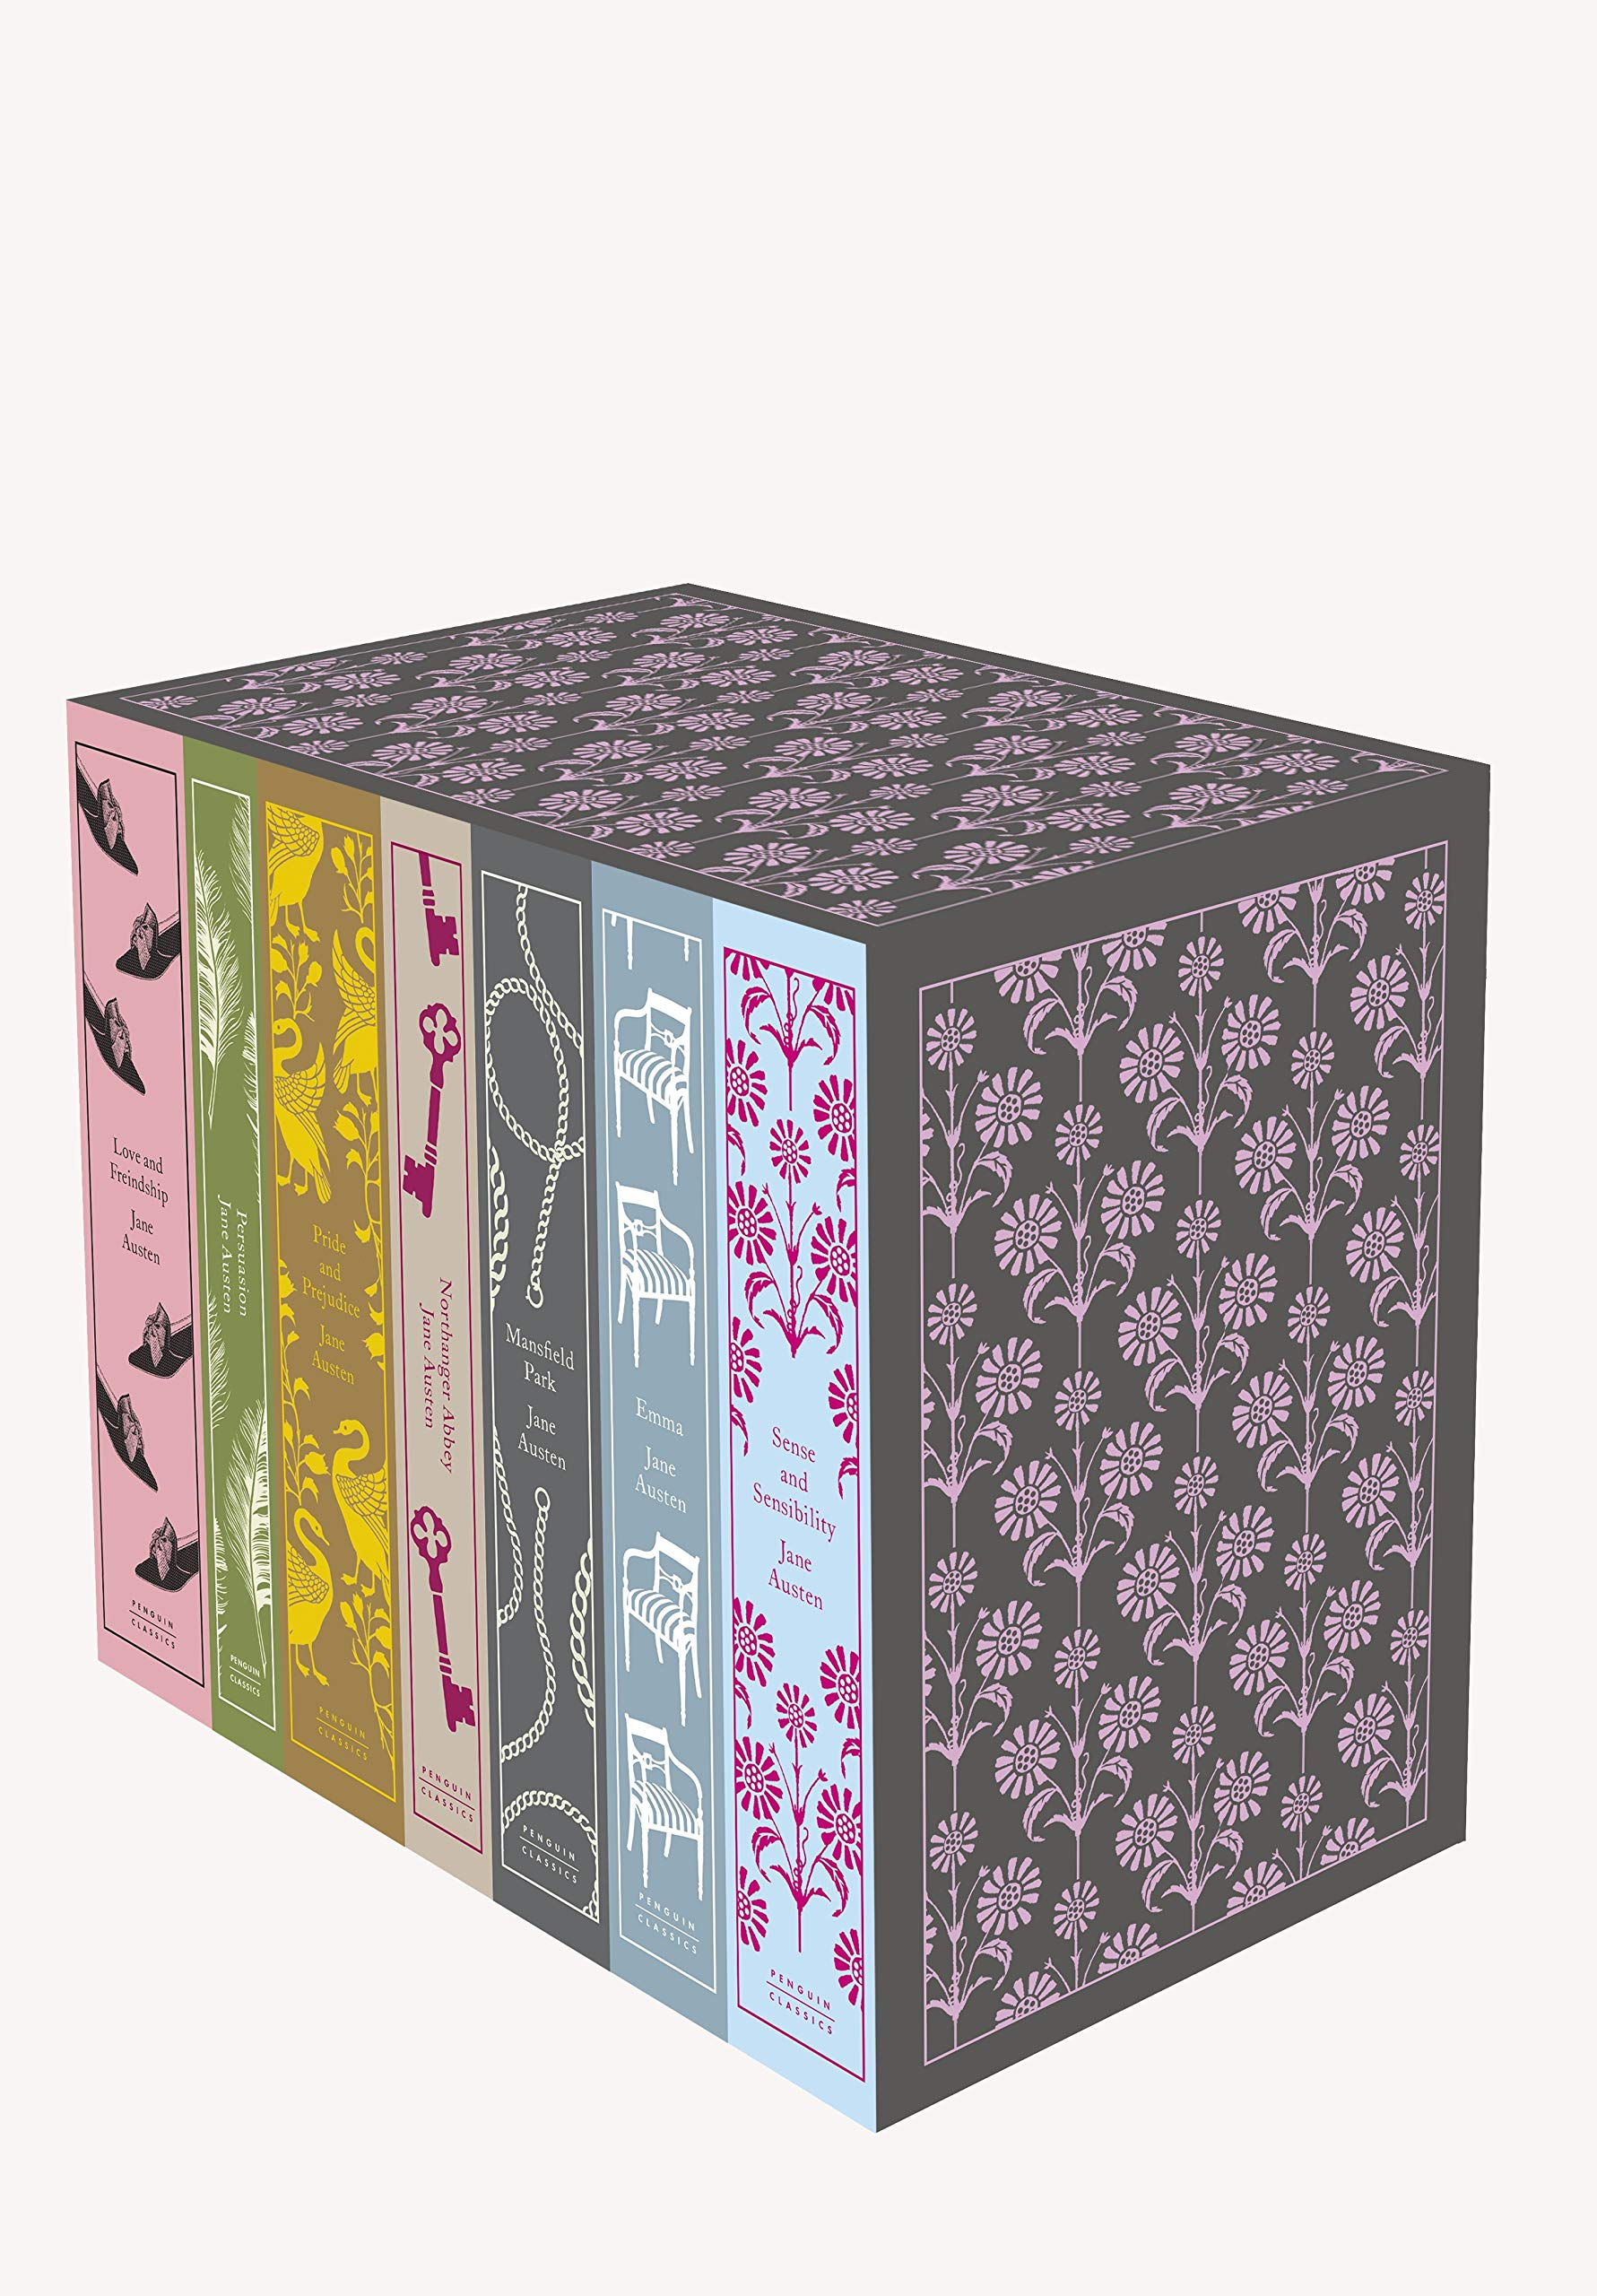 Jane Austen. The Complete Works (Penguin Clothbound Classics)